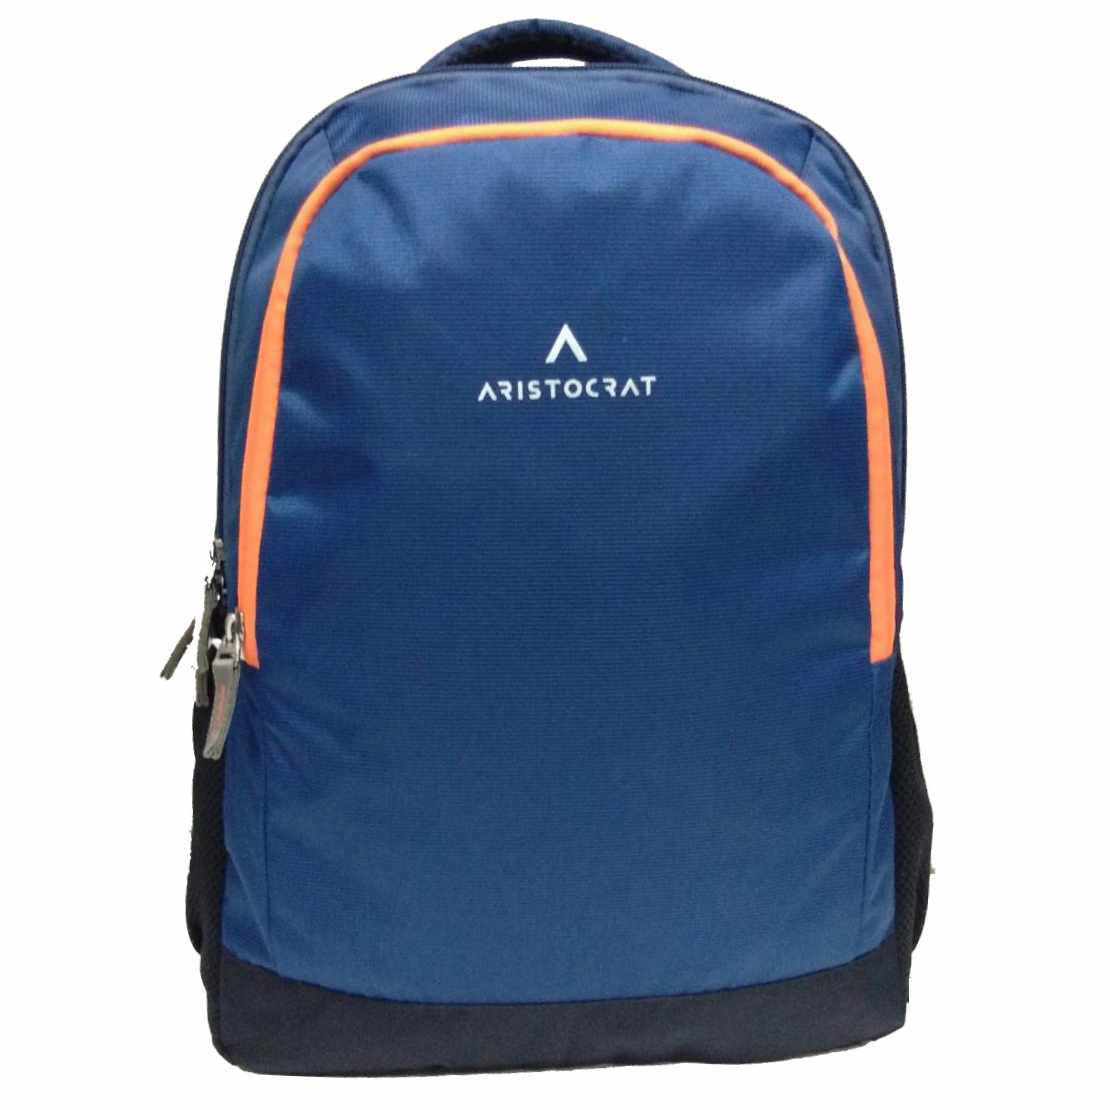 Aristocrat A3 Laptop Backpack Bag